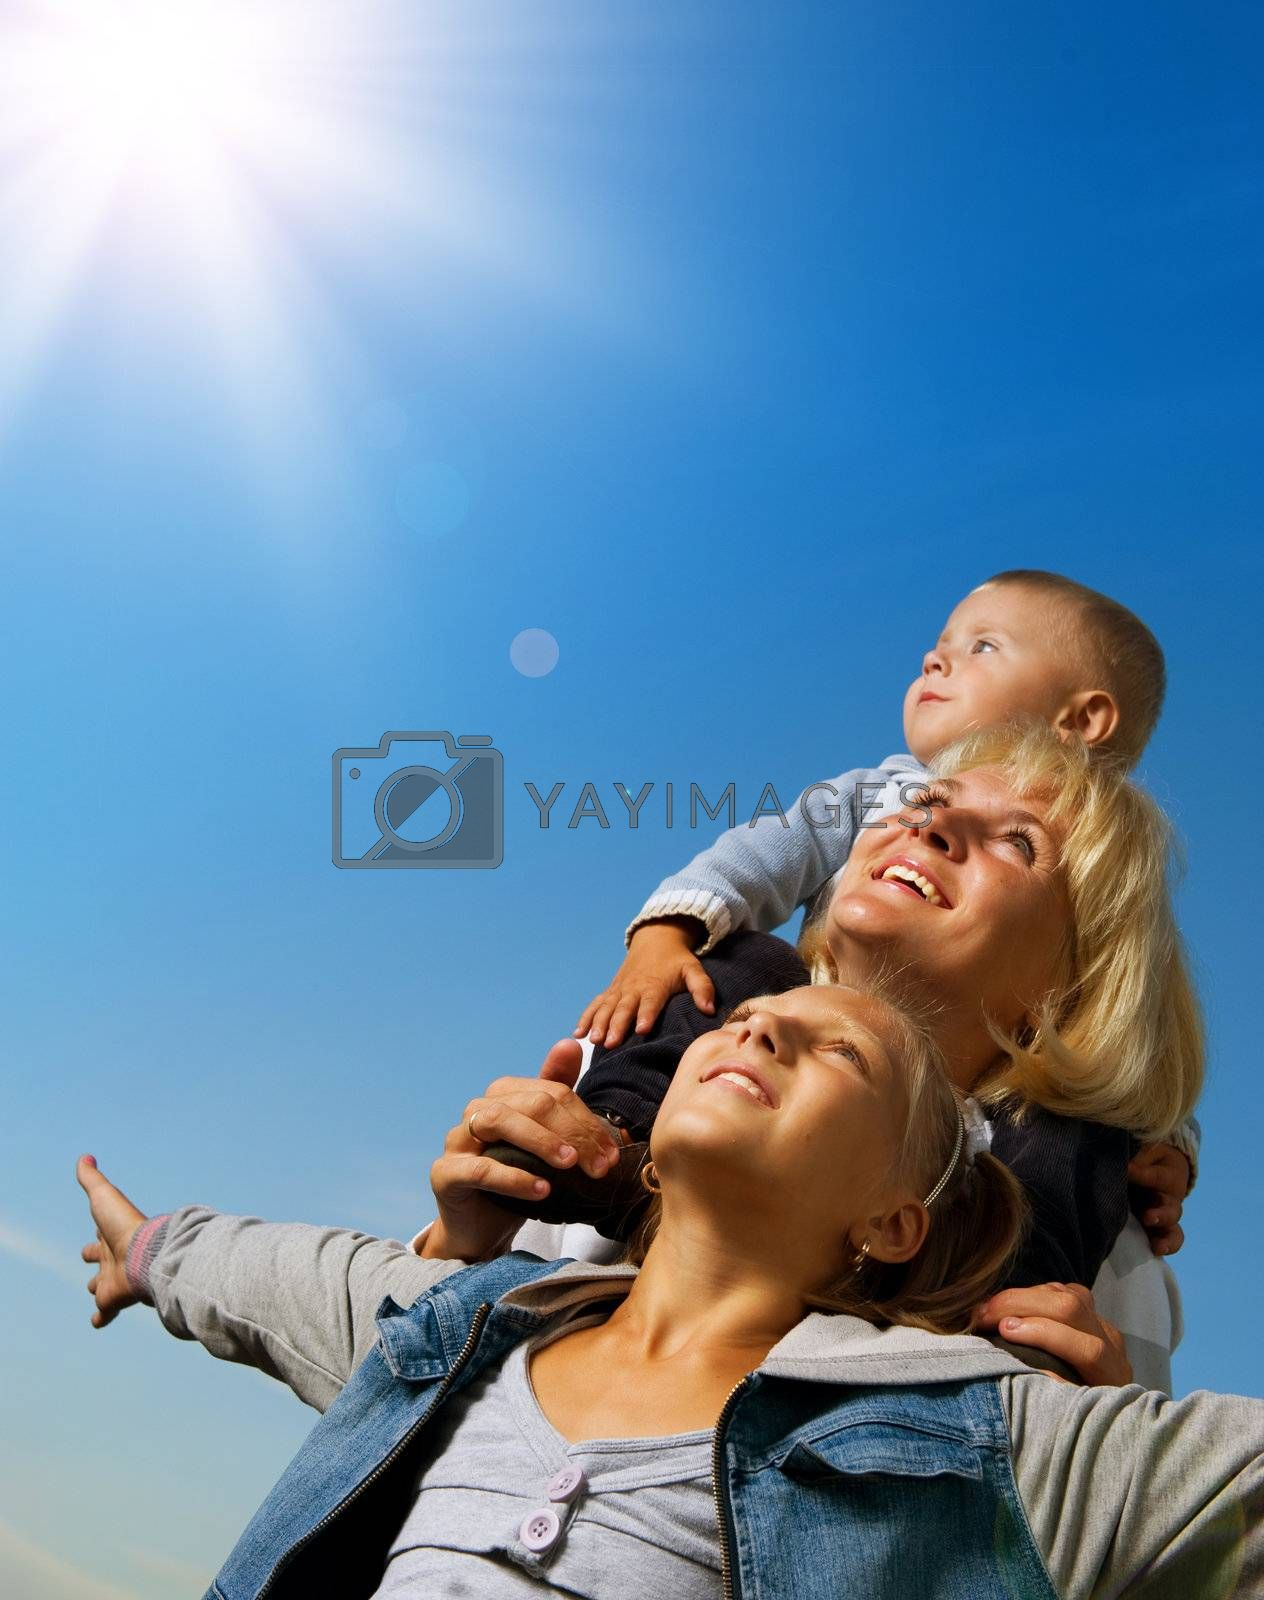 Healthy Family Outdoor. Happy Mother With Kids Over Blue Sky